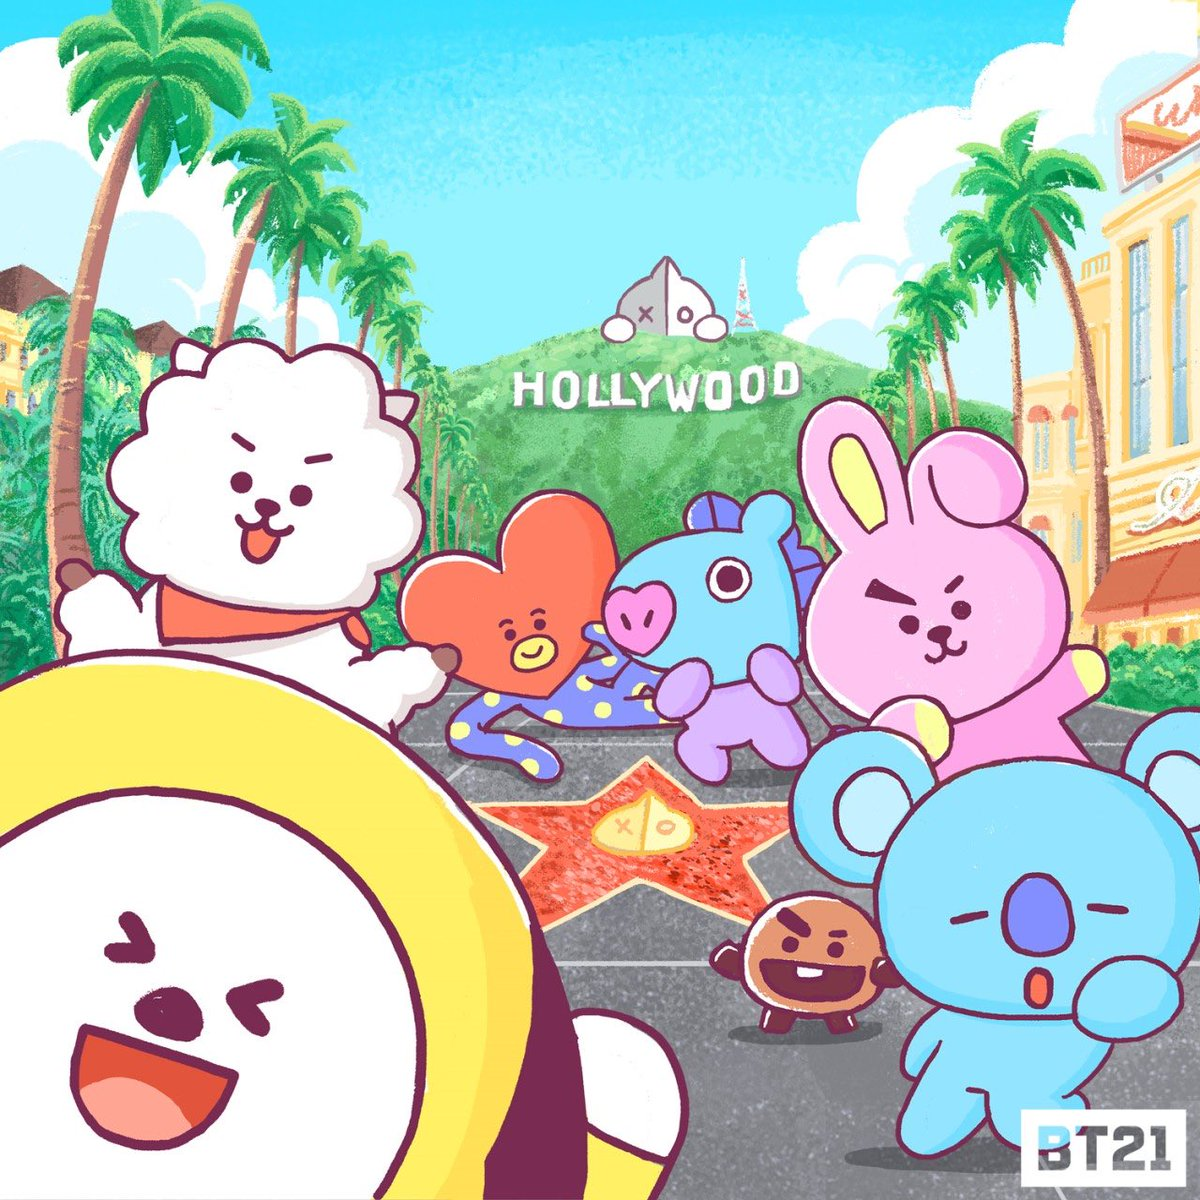 test Twitter Media - Home to stars, Hollywood! Here we come!  <Location> 6922 Hollywood Blvd, Los Angeles, CA 90028   #BT21 #LA #HOLLYWOOD #COMINGSOON #JULY27 https://t.co/RGFw9H5dUy